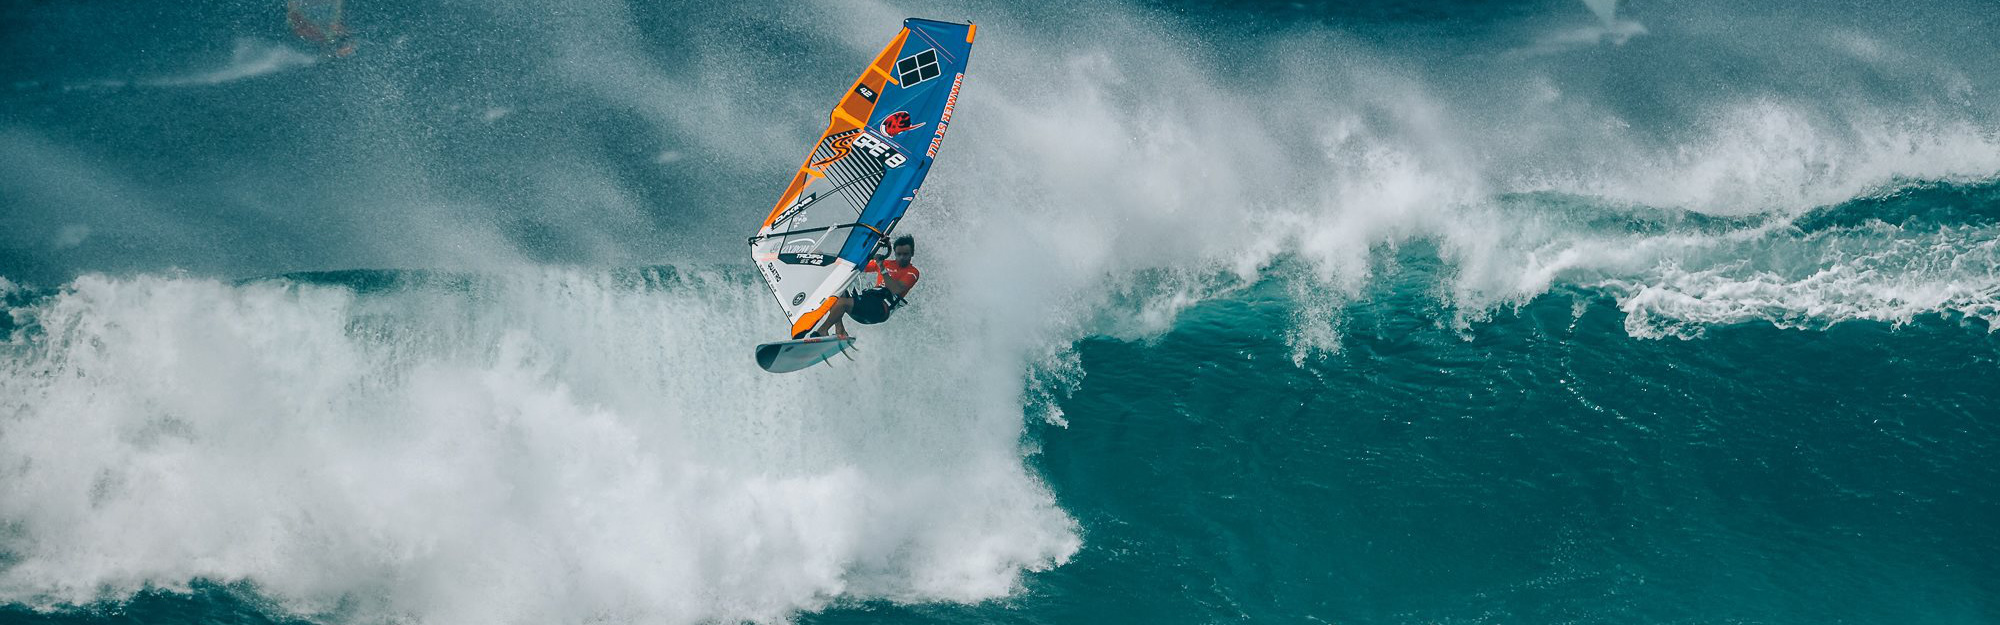 Maui Aloha Classic 2019 - International Windsurfing Tour